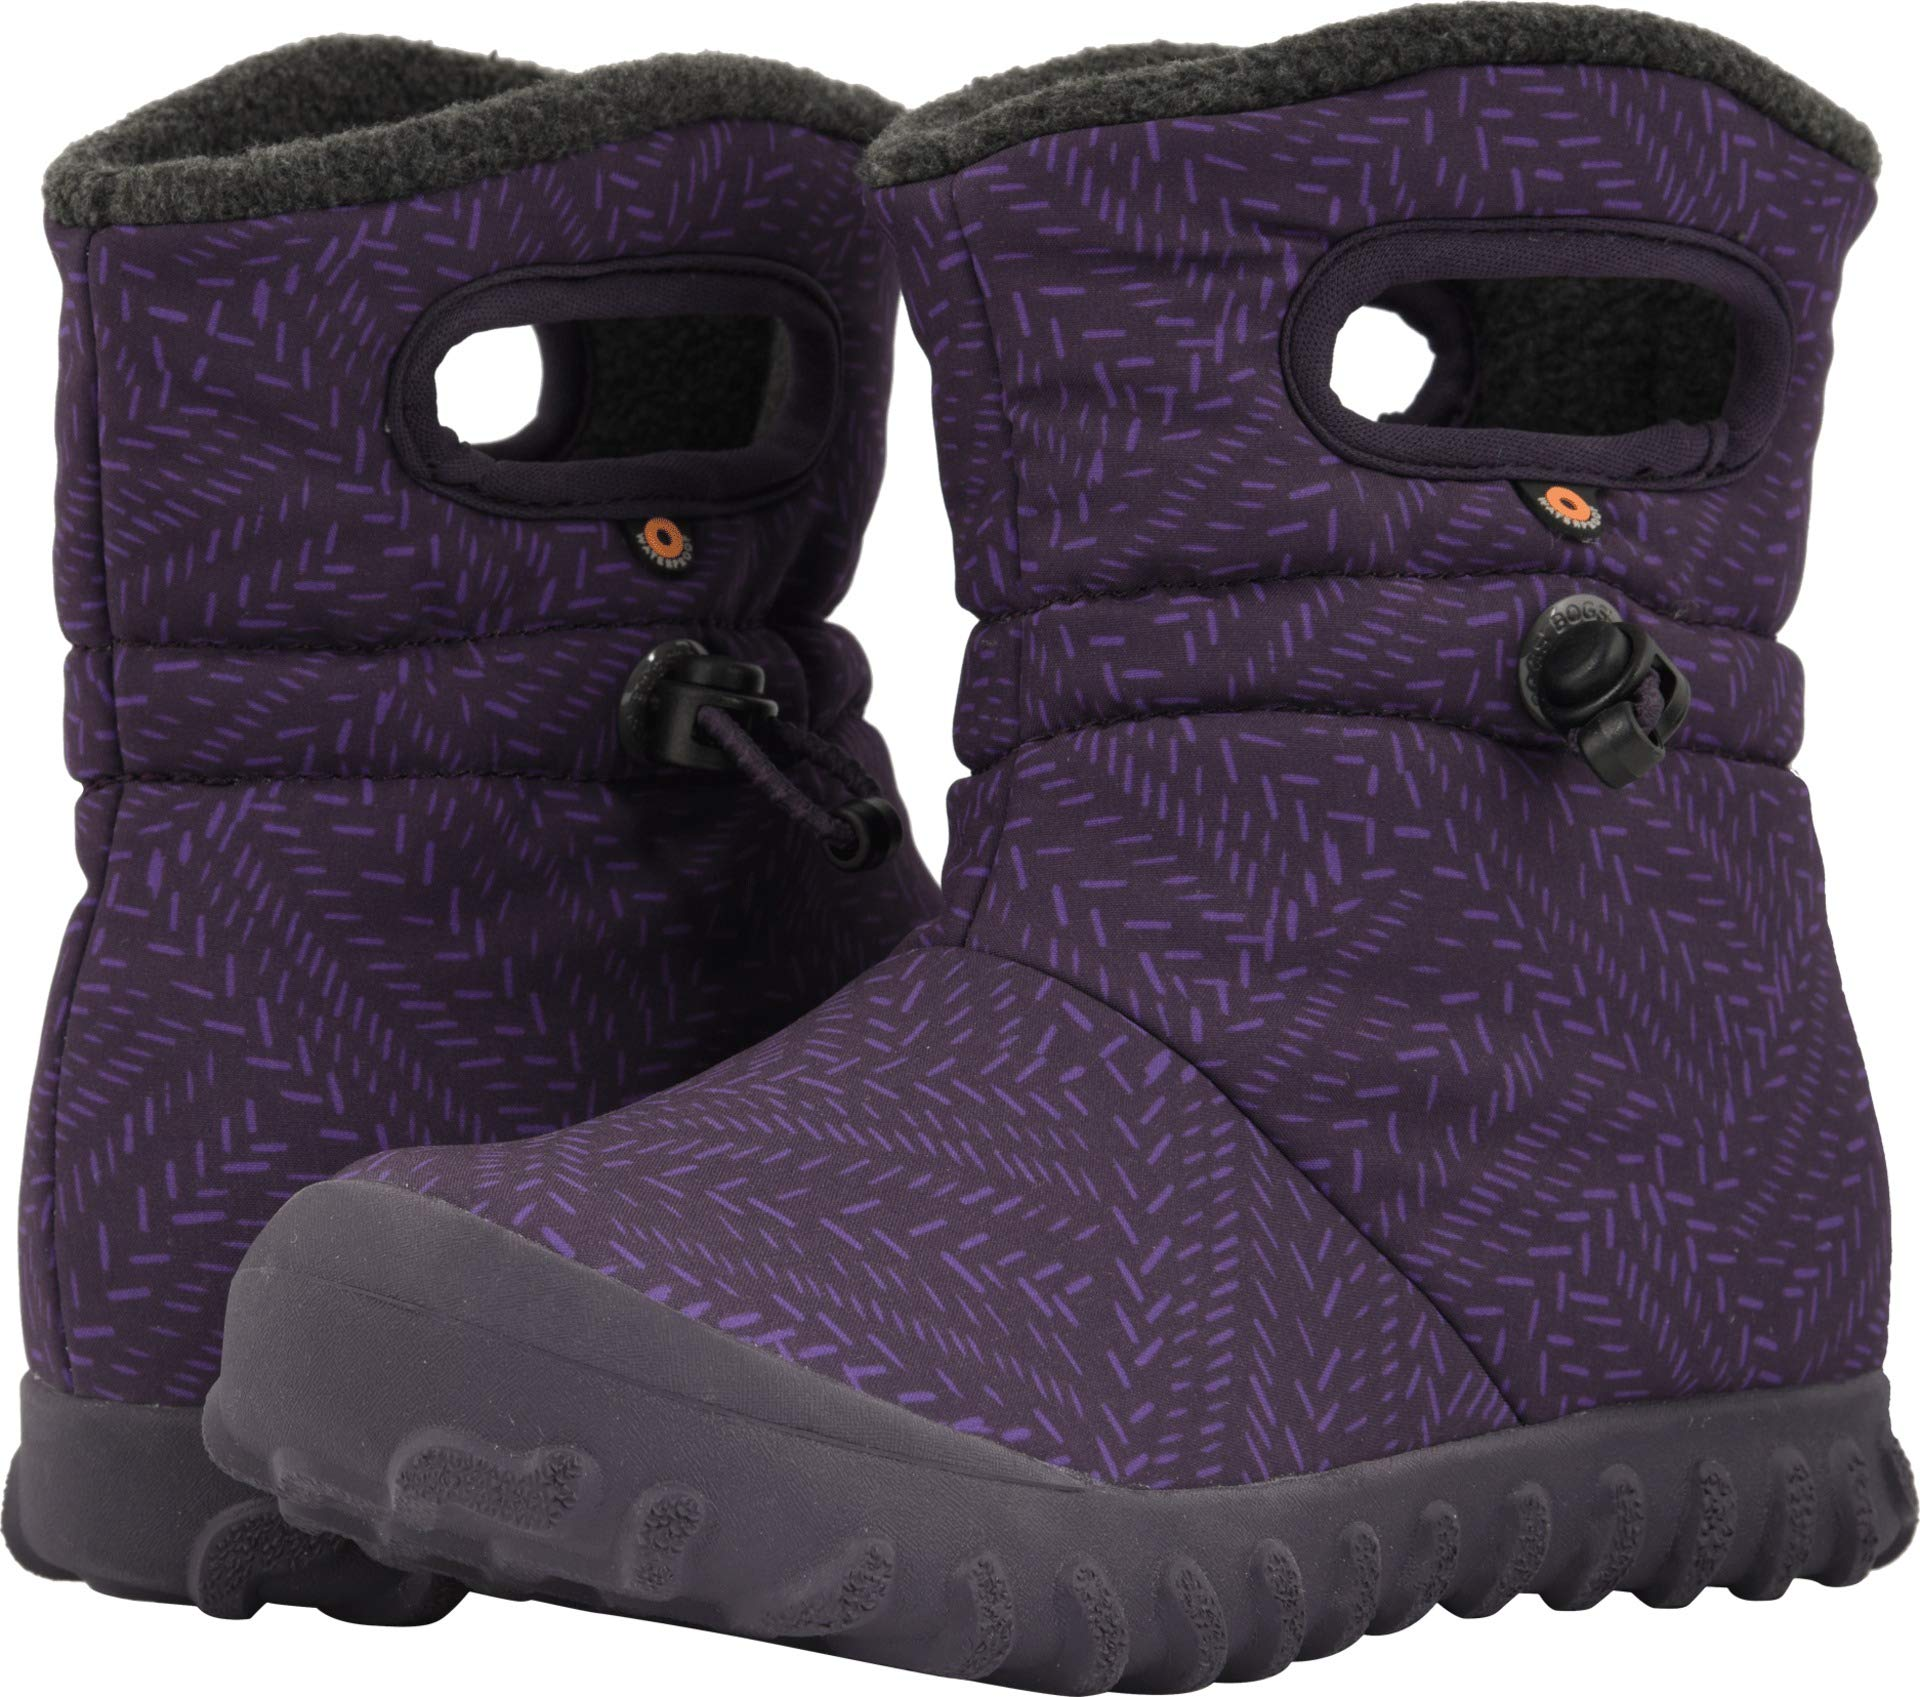 17fc71252d Bogs Baby B-Moc Waterproof Insulated Kids/Toddler Winter Boot, Fleck  Print/Eggplant/Multi, 5 M US Big